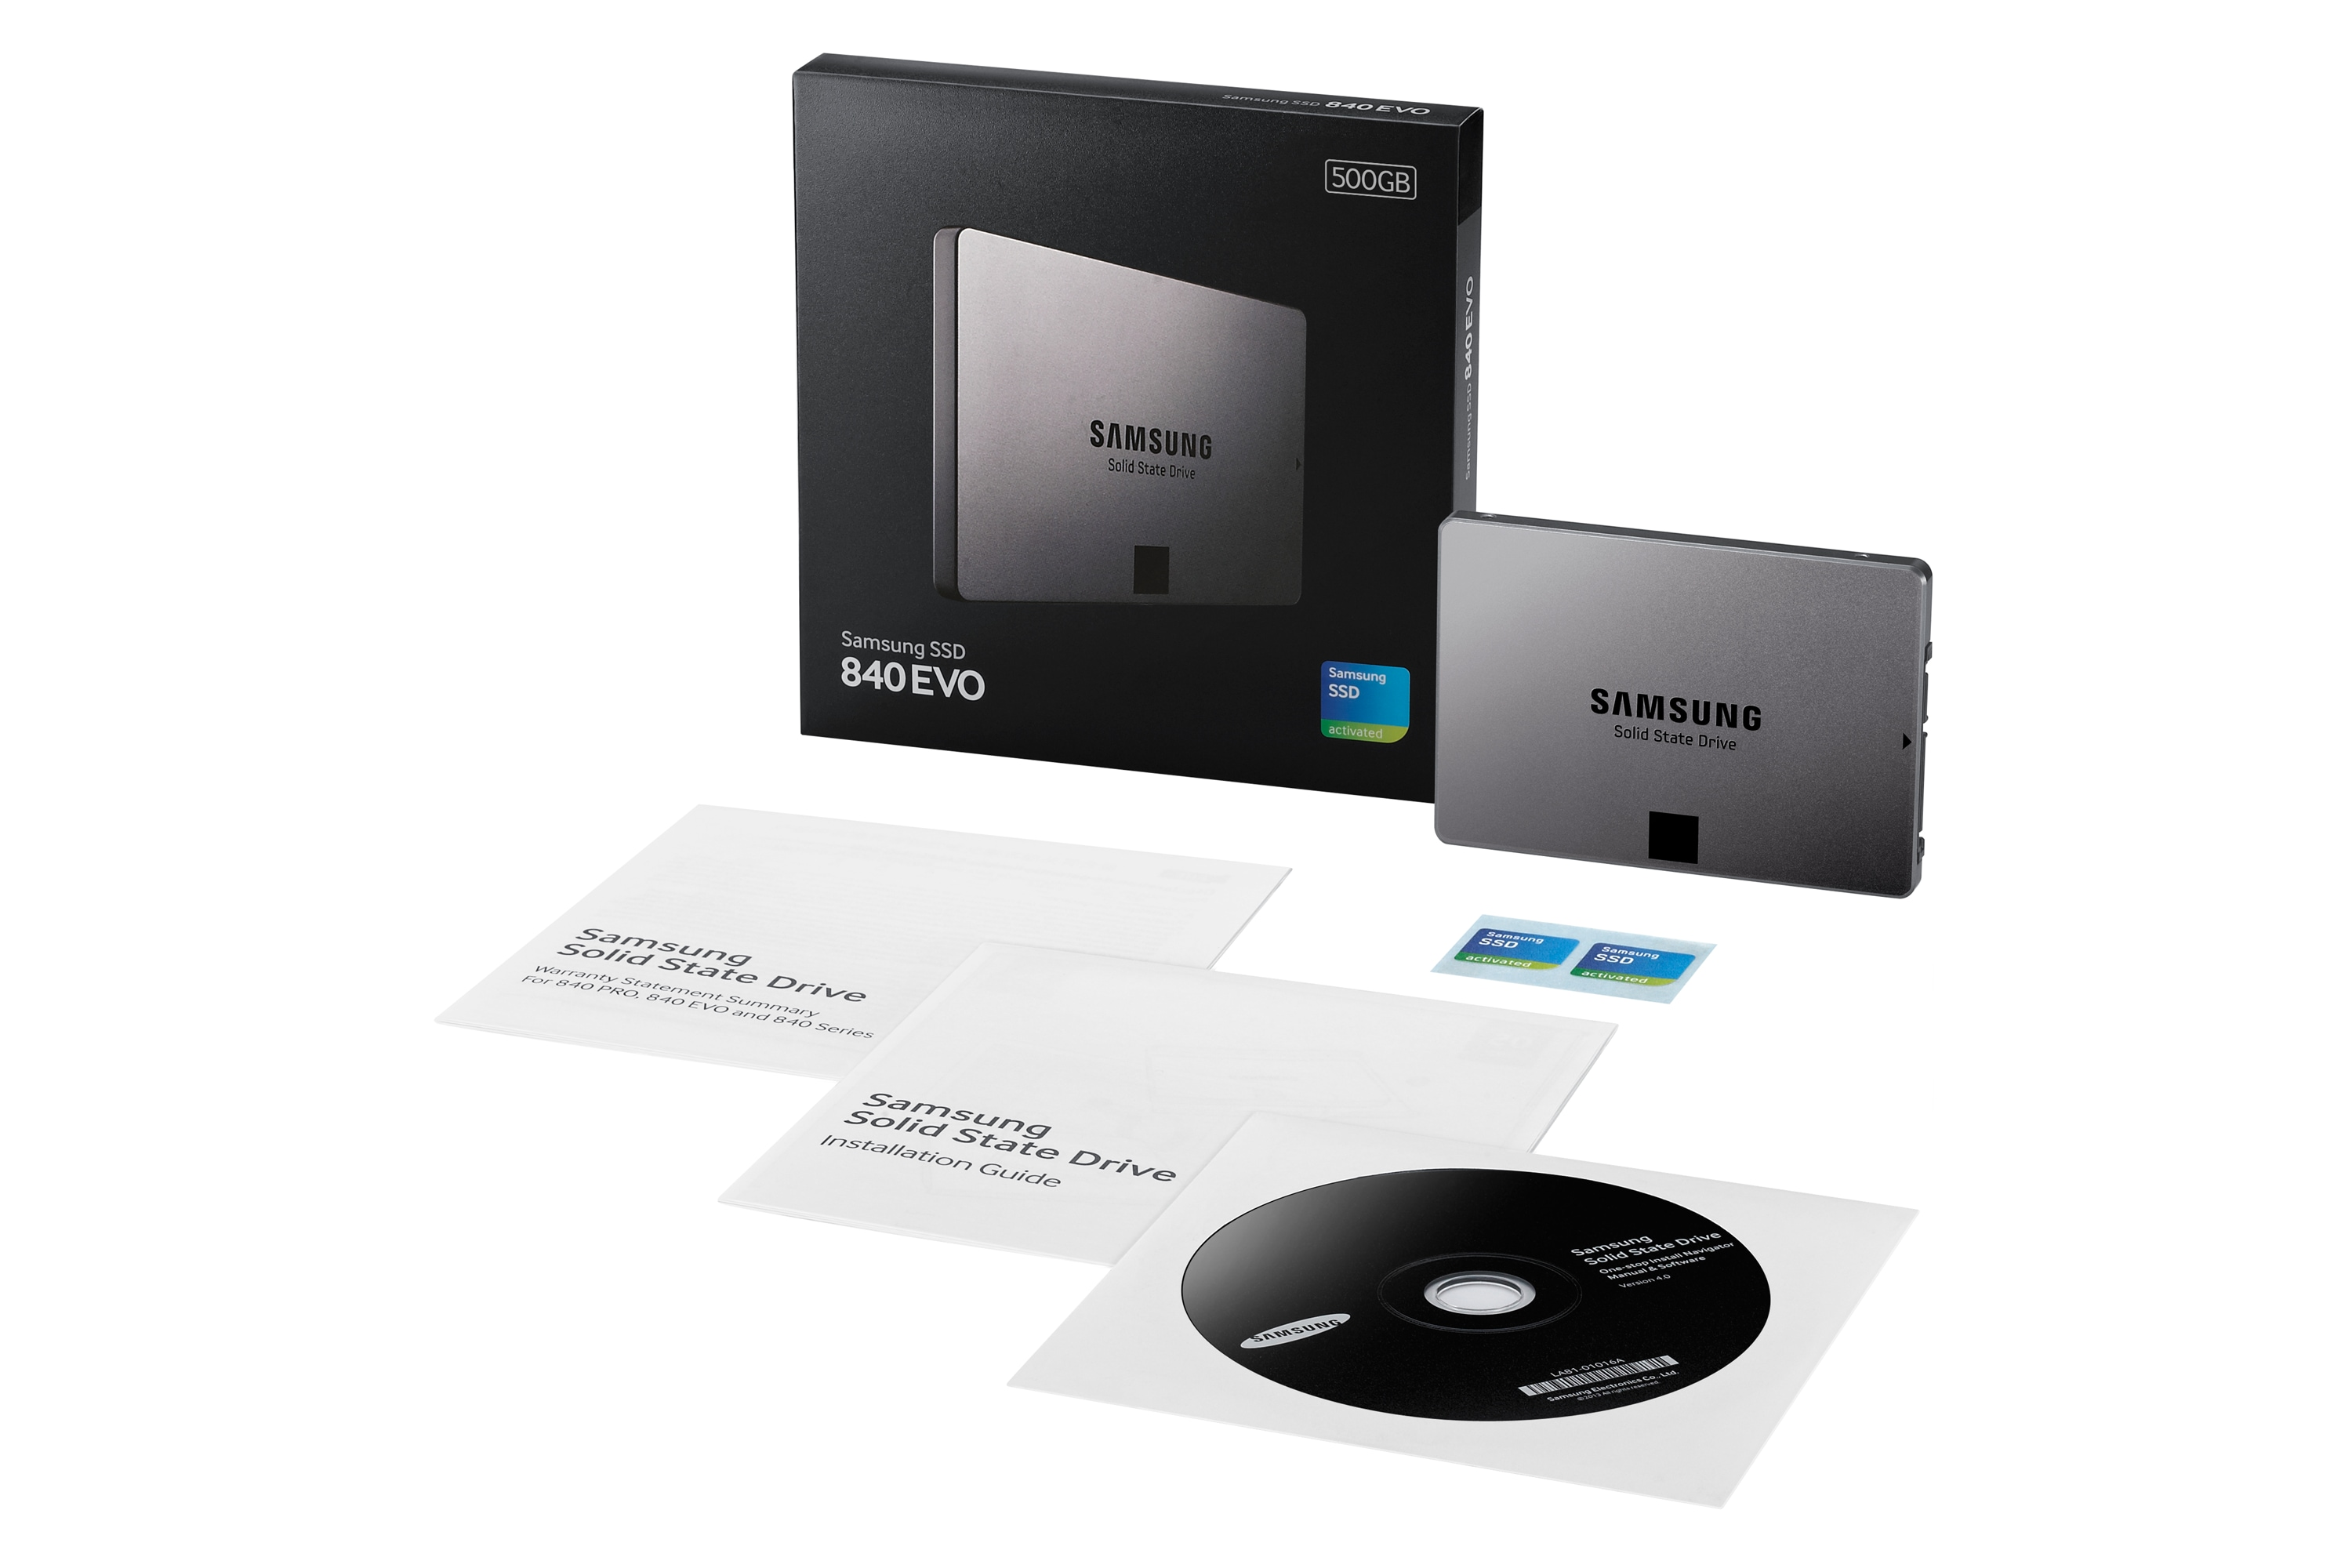 MZ-7TE500 500GB 2.5-inch 840 EVO SSD Pack grey